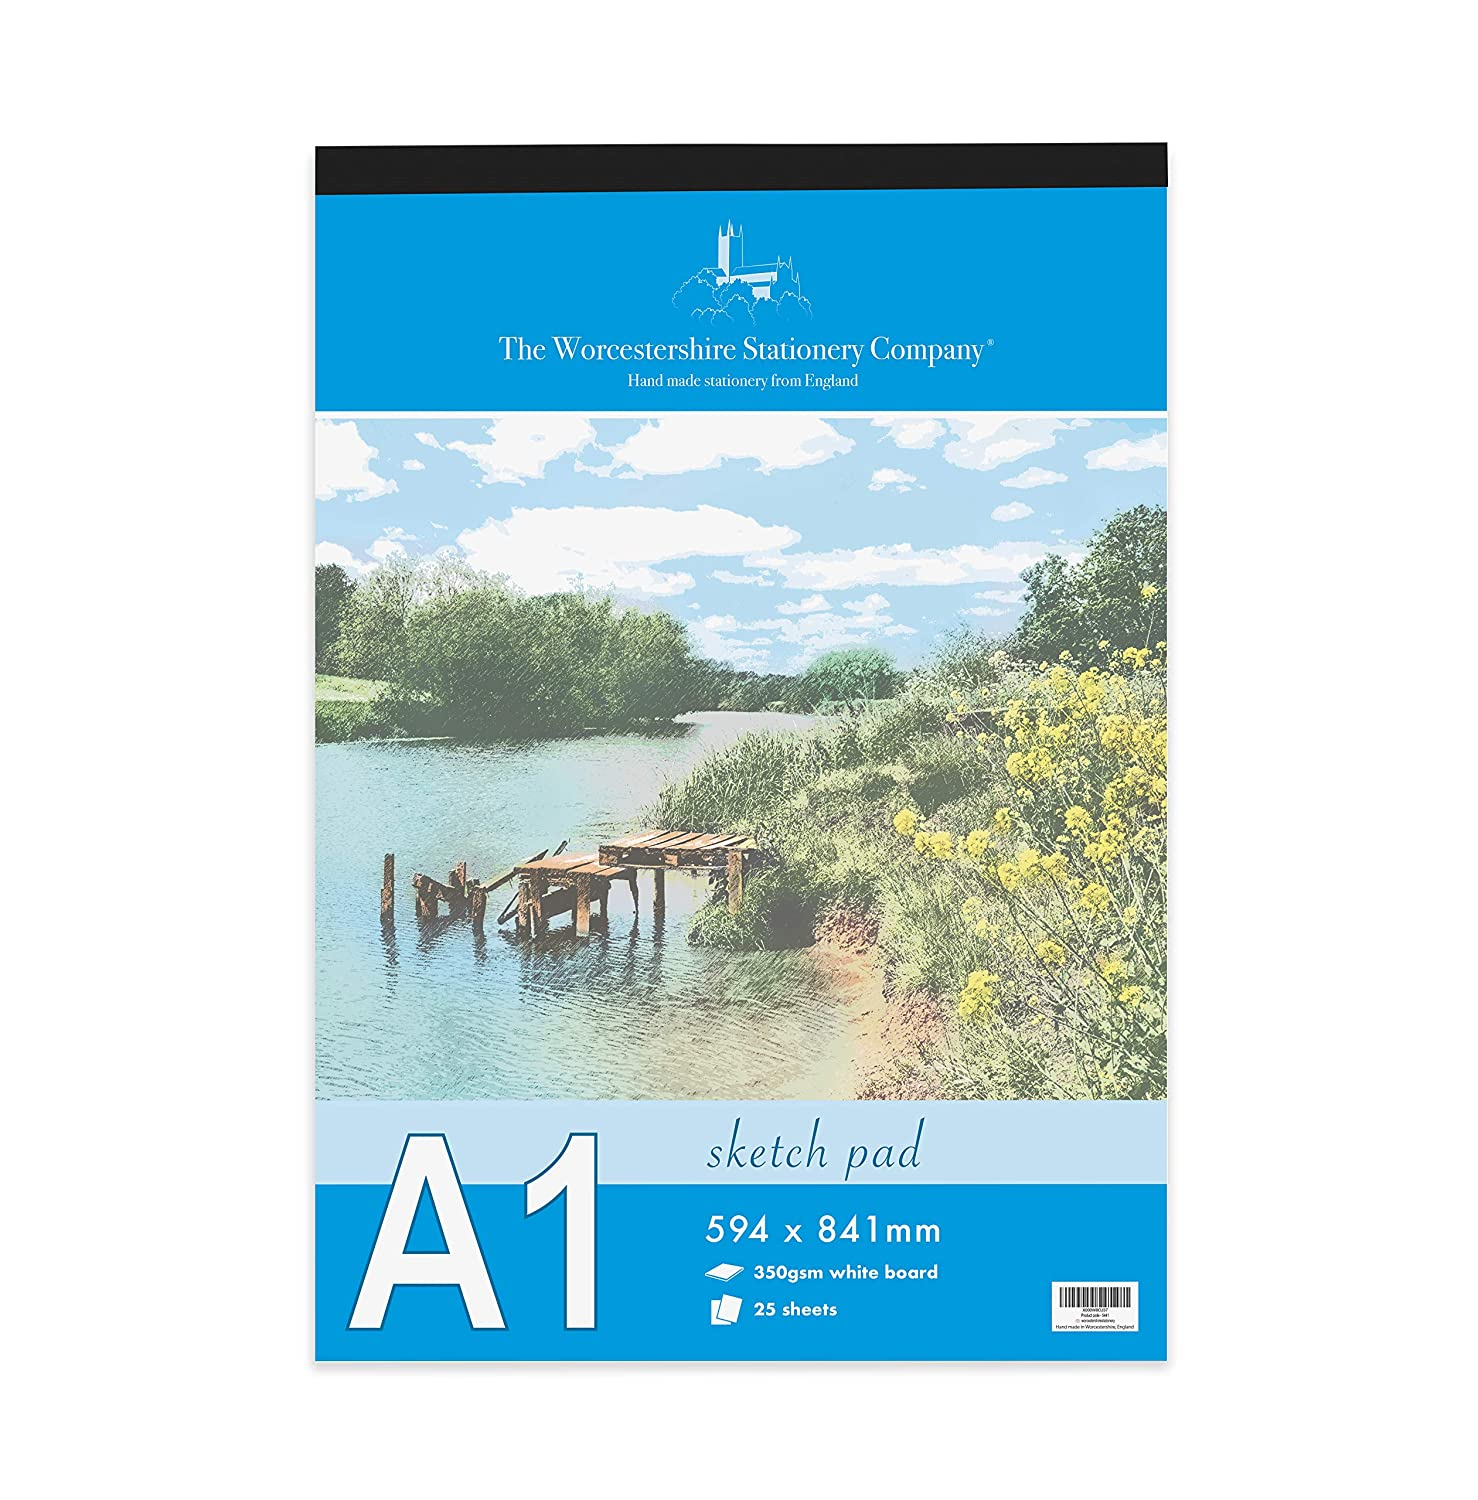 Artists Premium A4 Sketch pad, 25 Sheets (50 Pages) of 350gsm Smooth White Card The Worcestershire Stationery Company